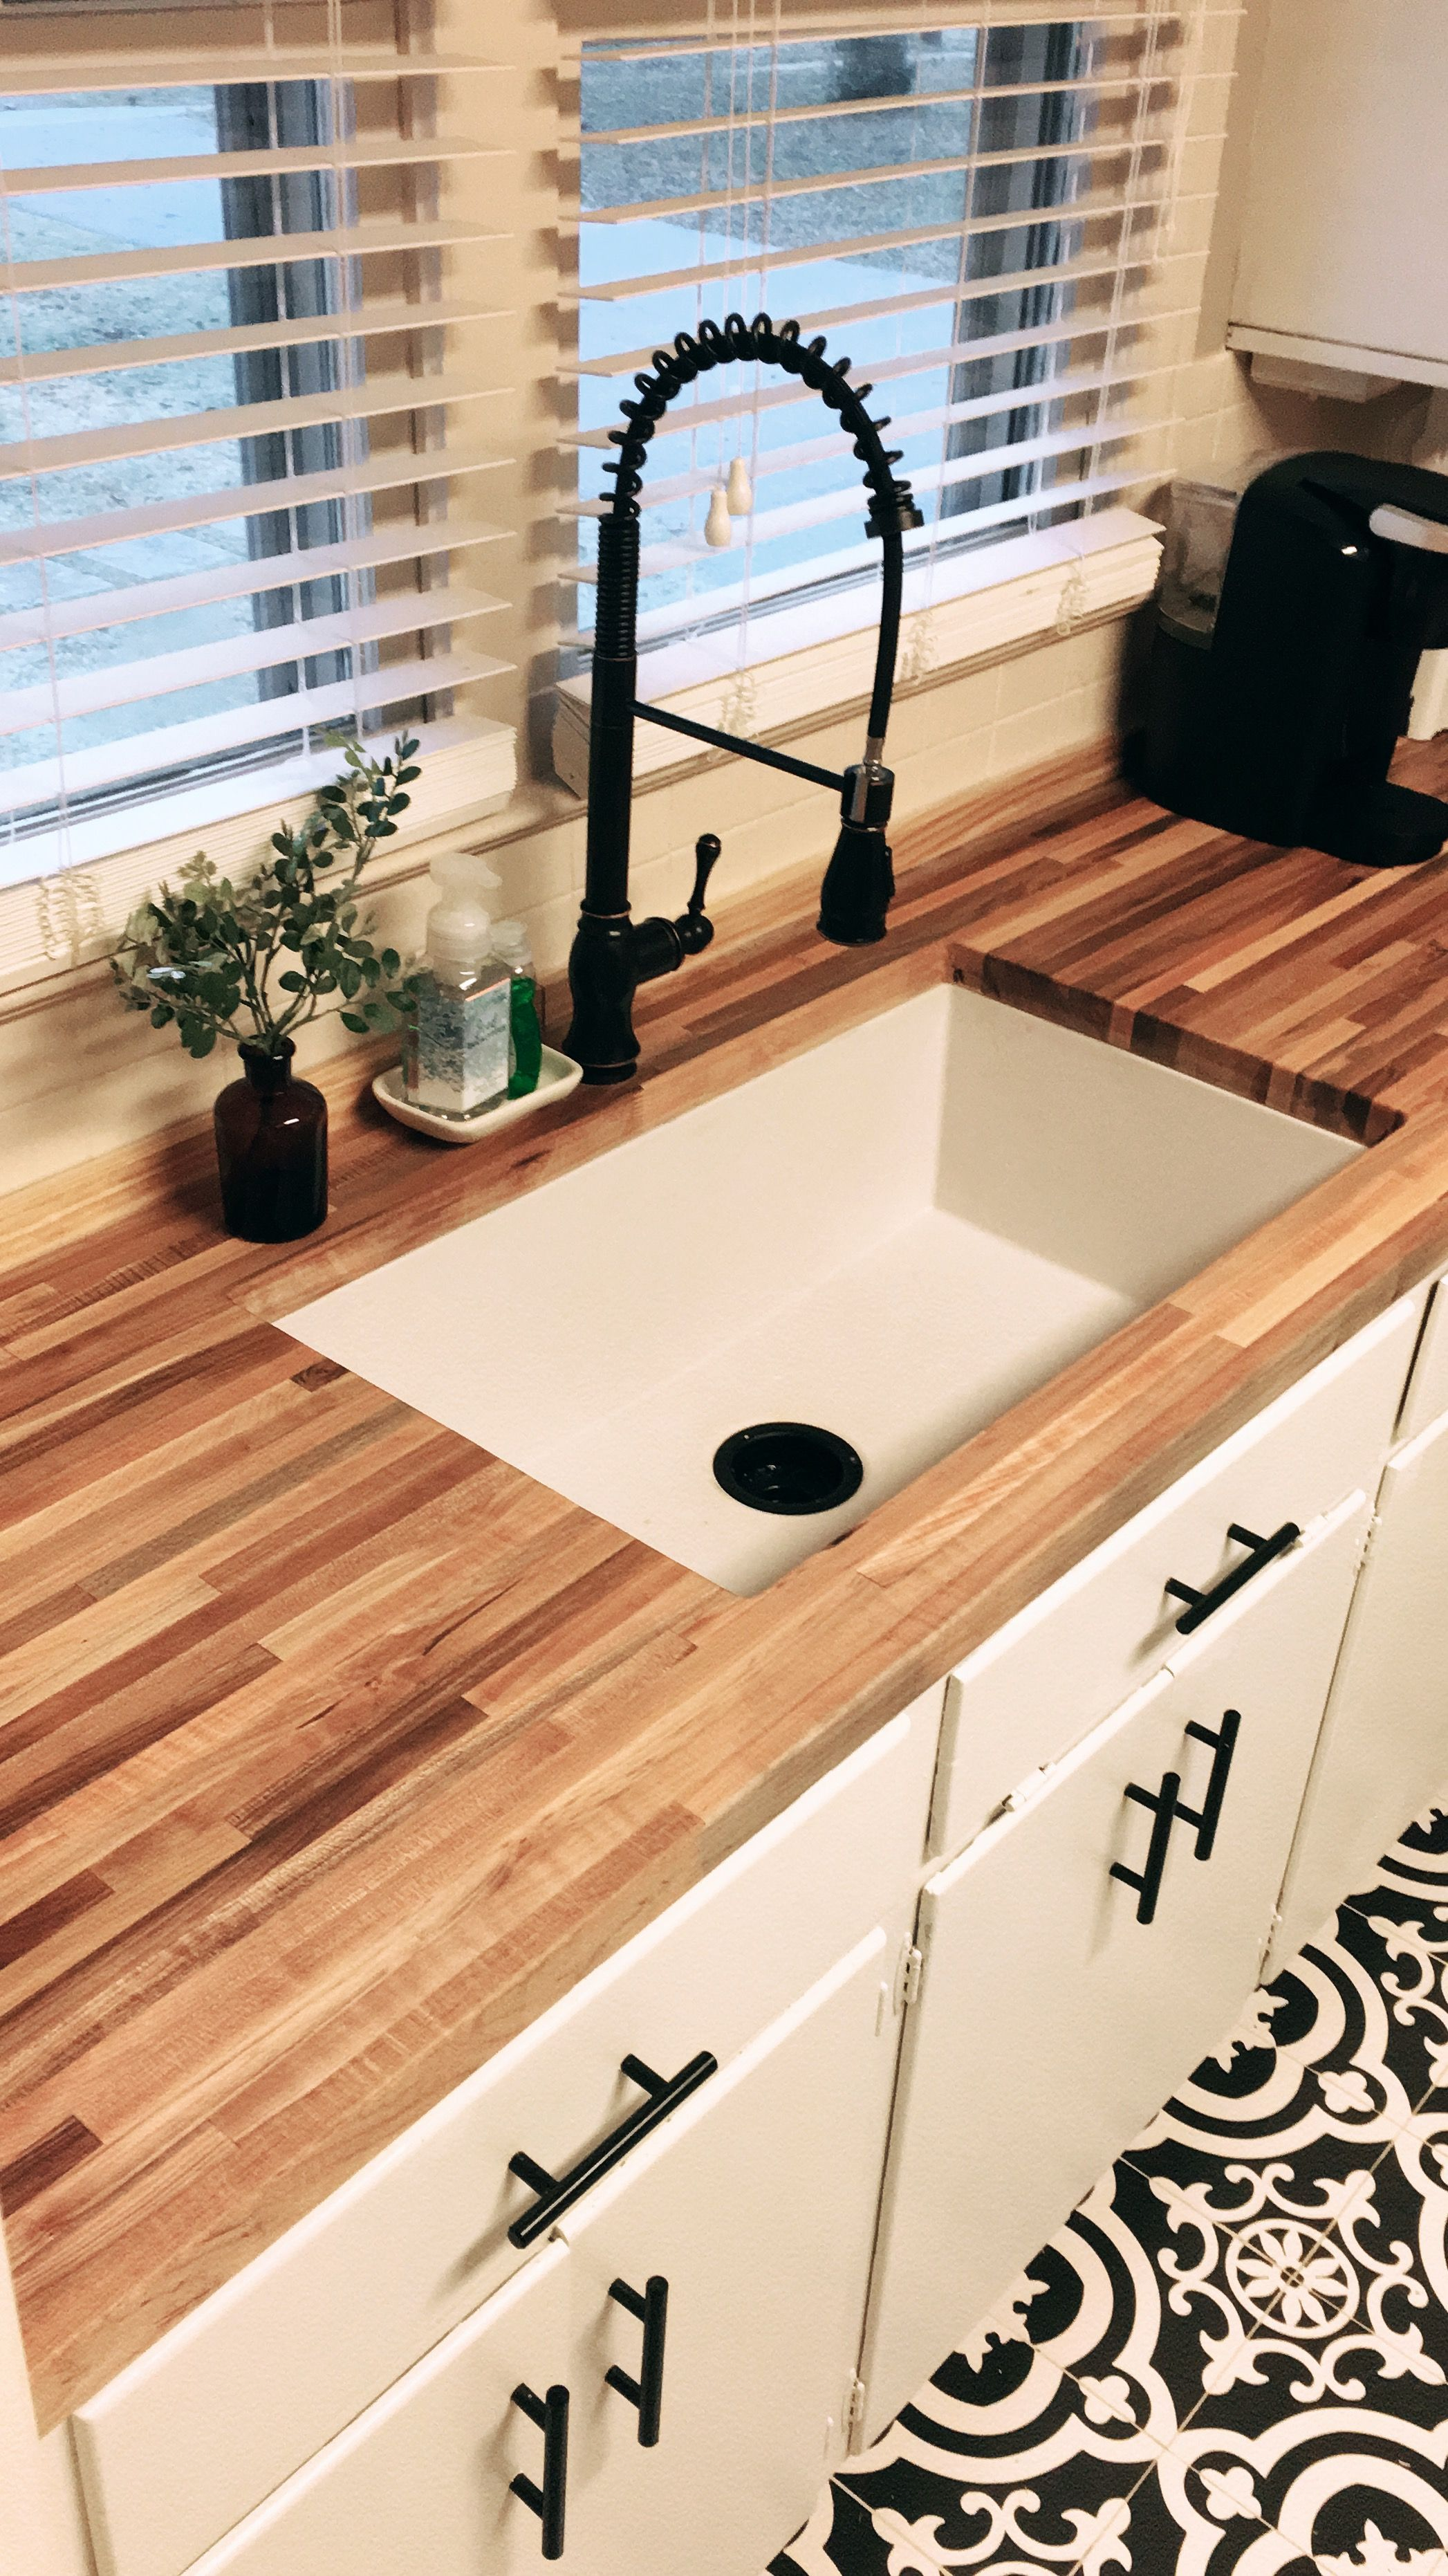 Patterned tile floor, butcher block counters, white large single